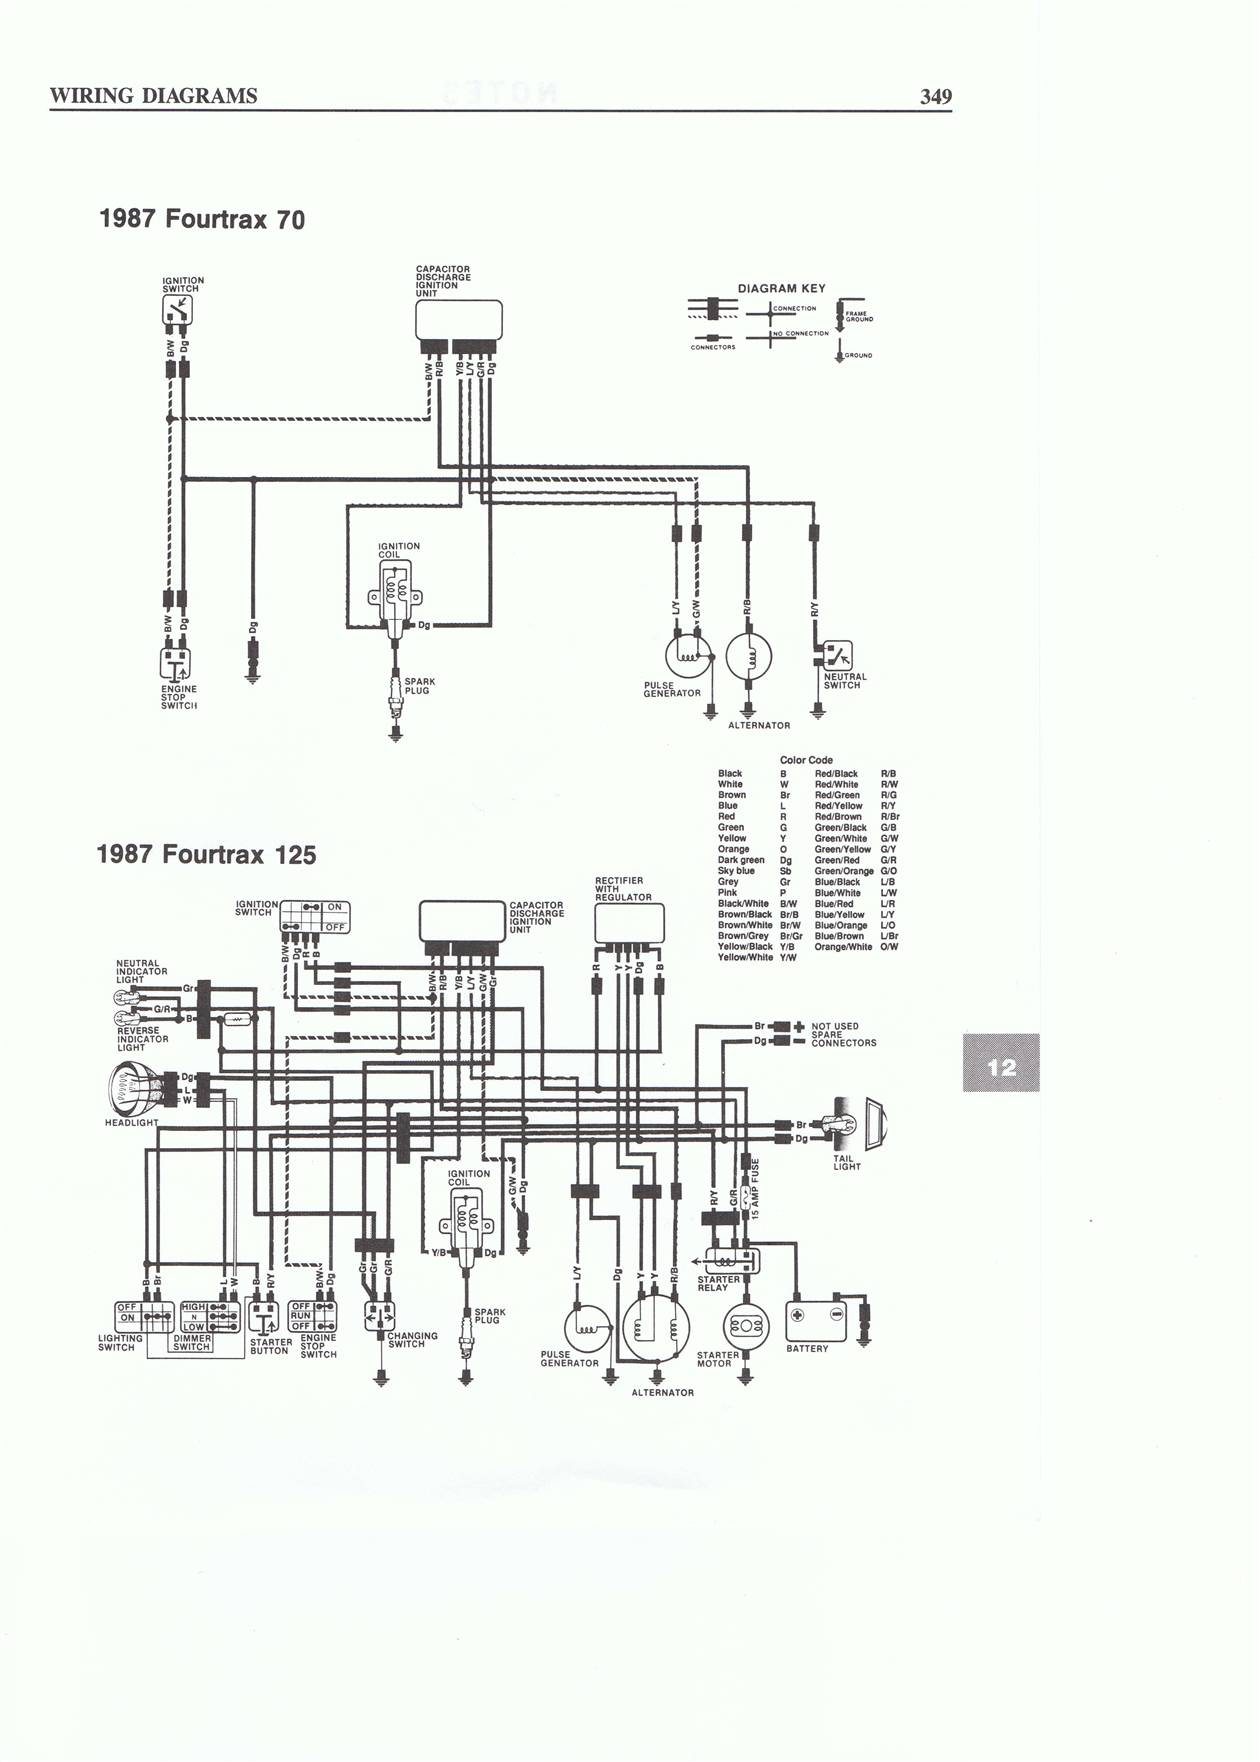 Eton 90r Wiring Diagram Diy Enthusiasts Diagrams Viper 5601 2005 90 Harness 27 Images Edmiracle Co Basic Electrical